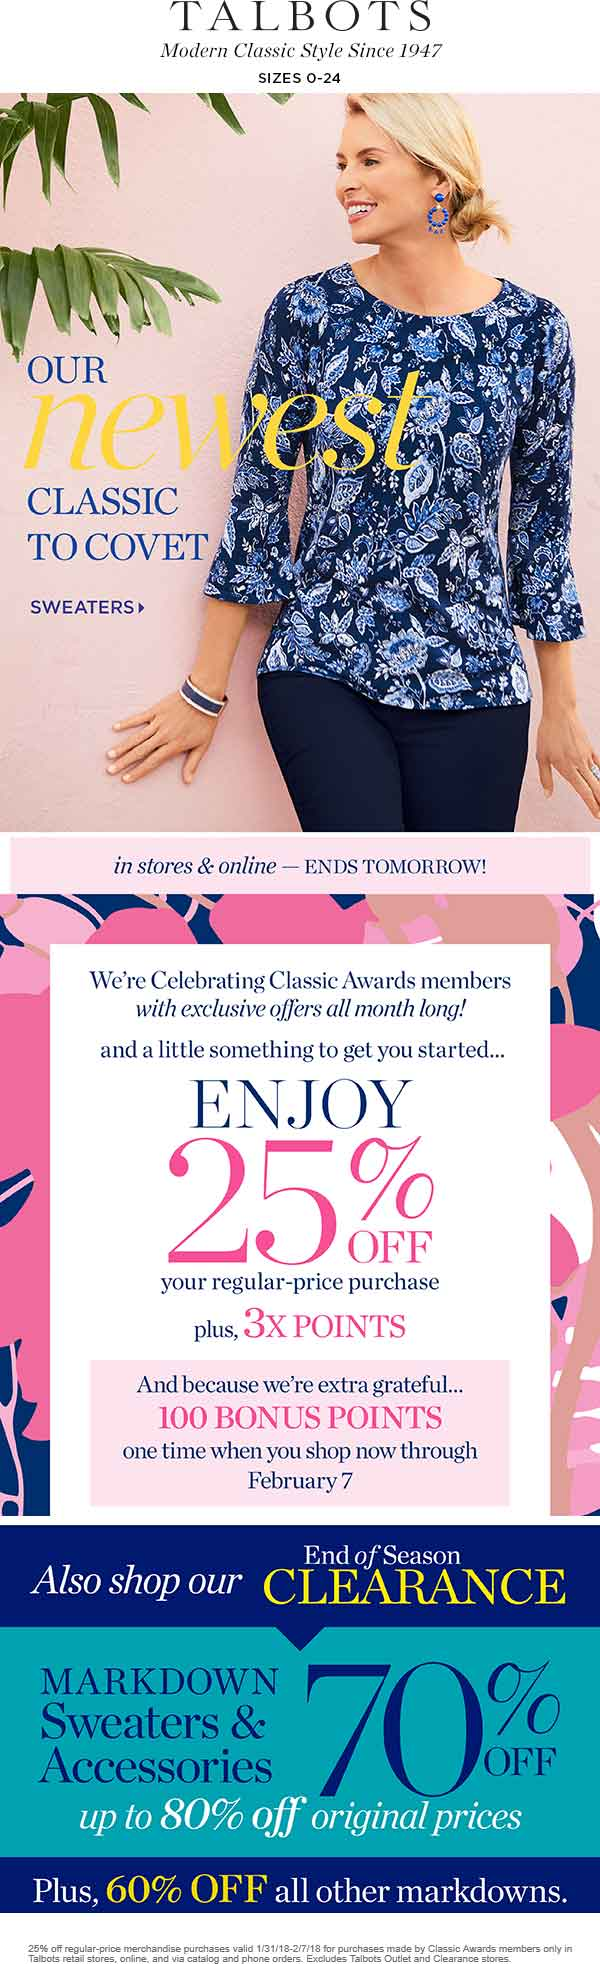 Talbots Coupon October 2018 25% off at Talbots, ditto online